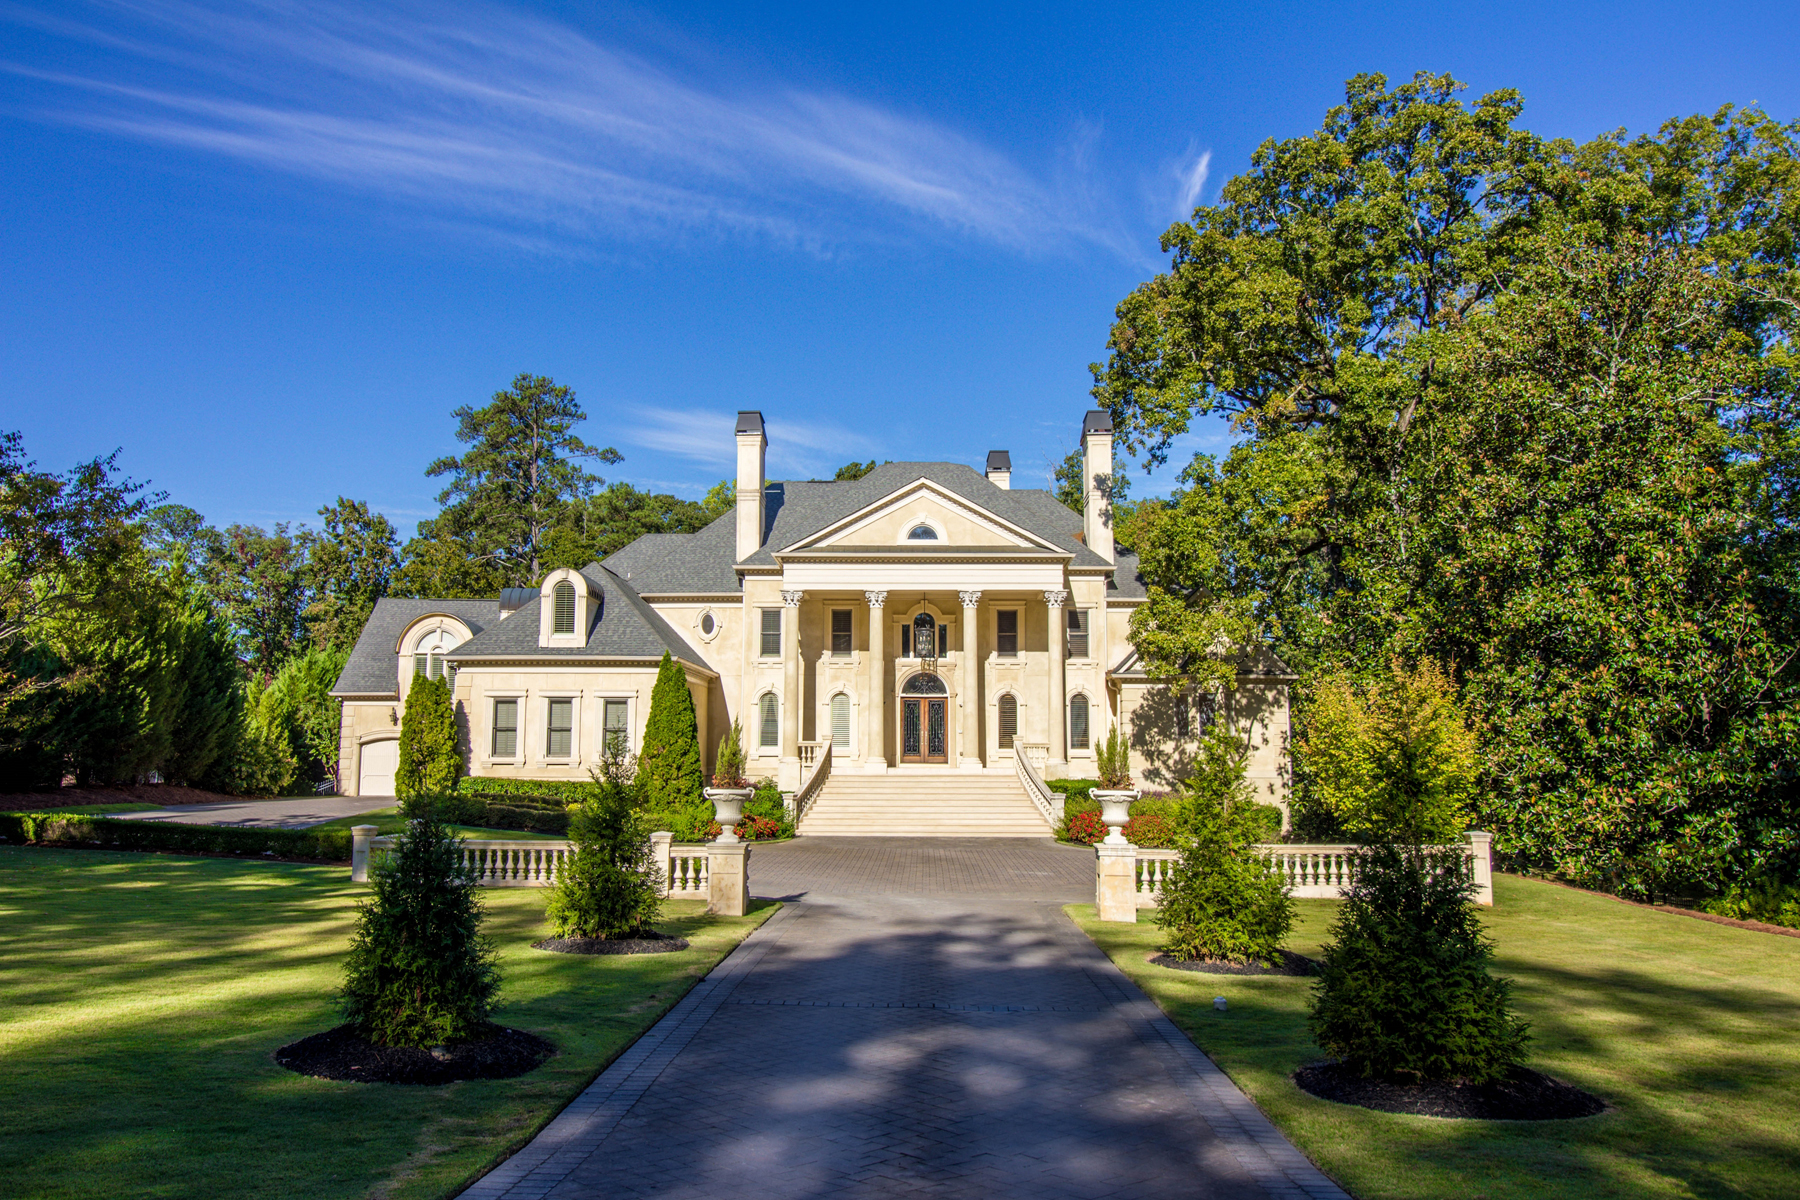 Single Family Home for Sale at Incomparable Neoclassical Estate In The Heart Of Buckhead 1495 Mount Paran Road NW Atlanta, Georgia, 30327 United States